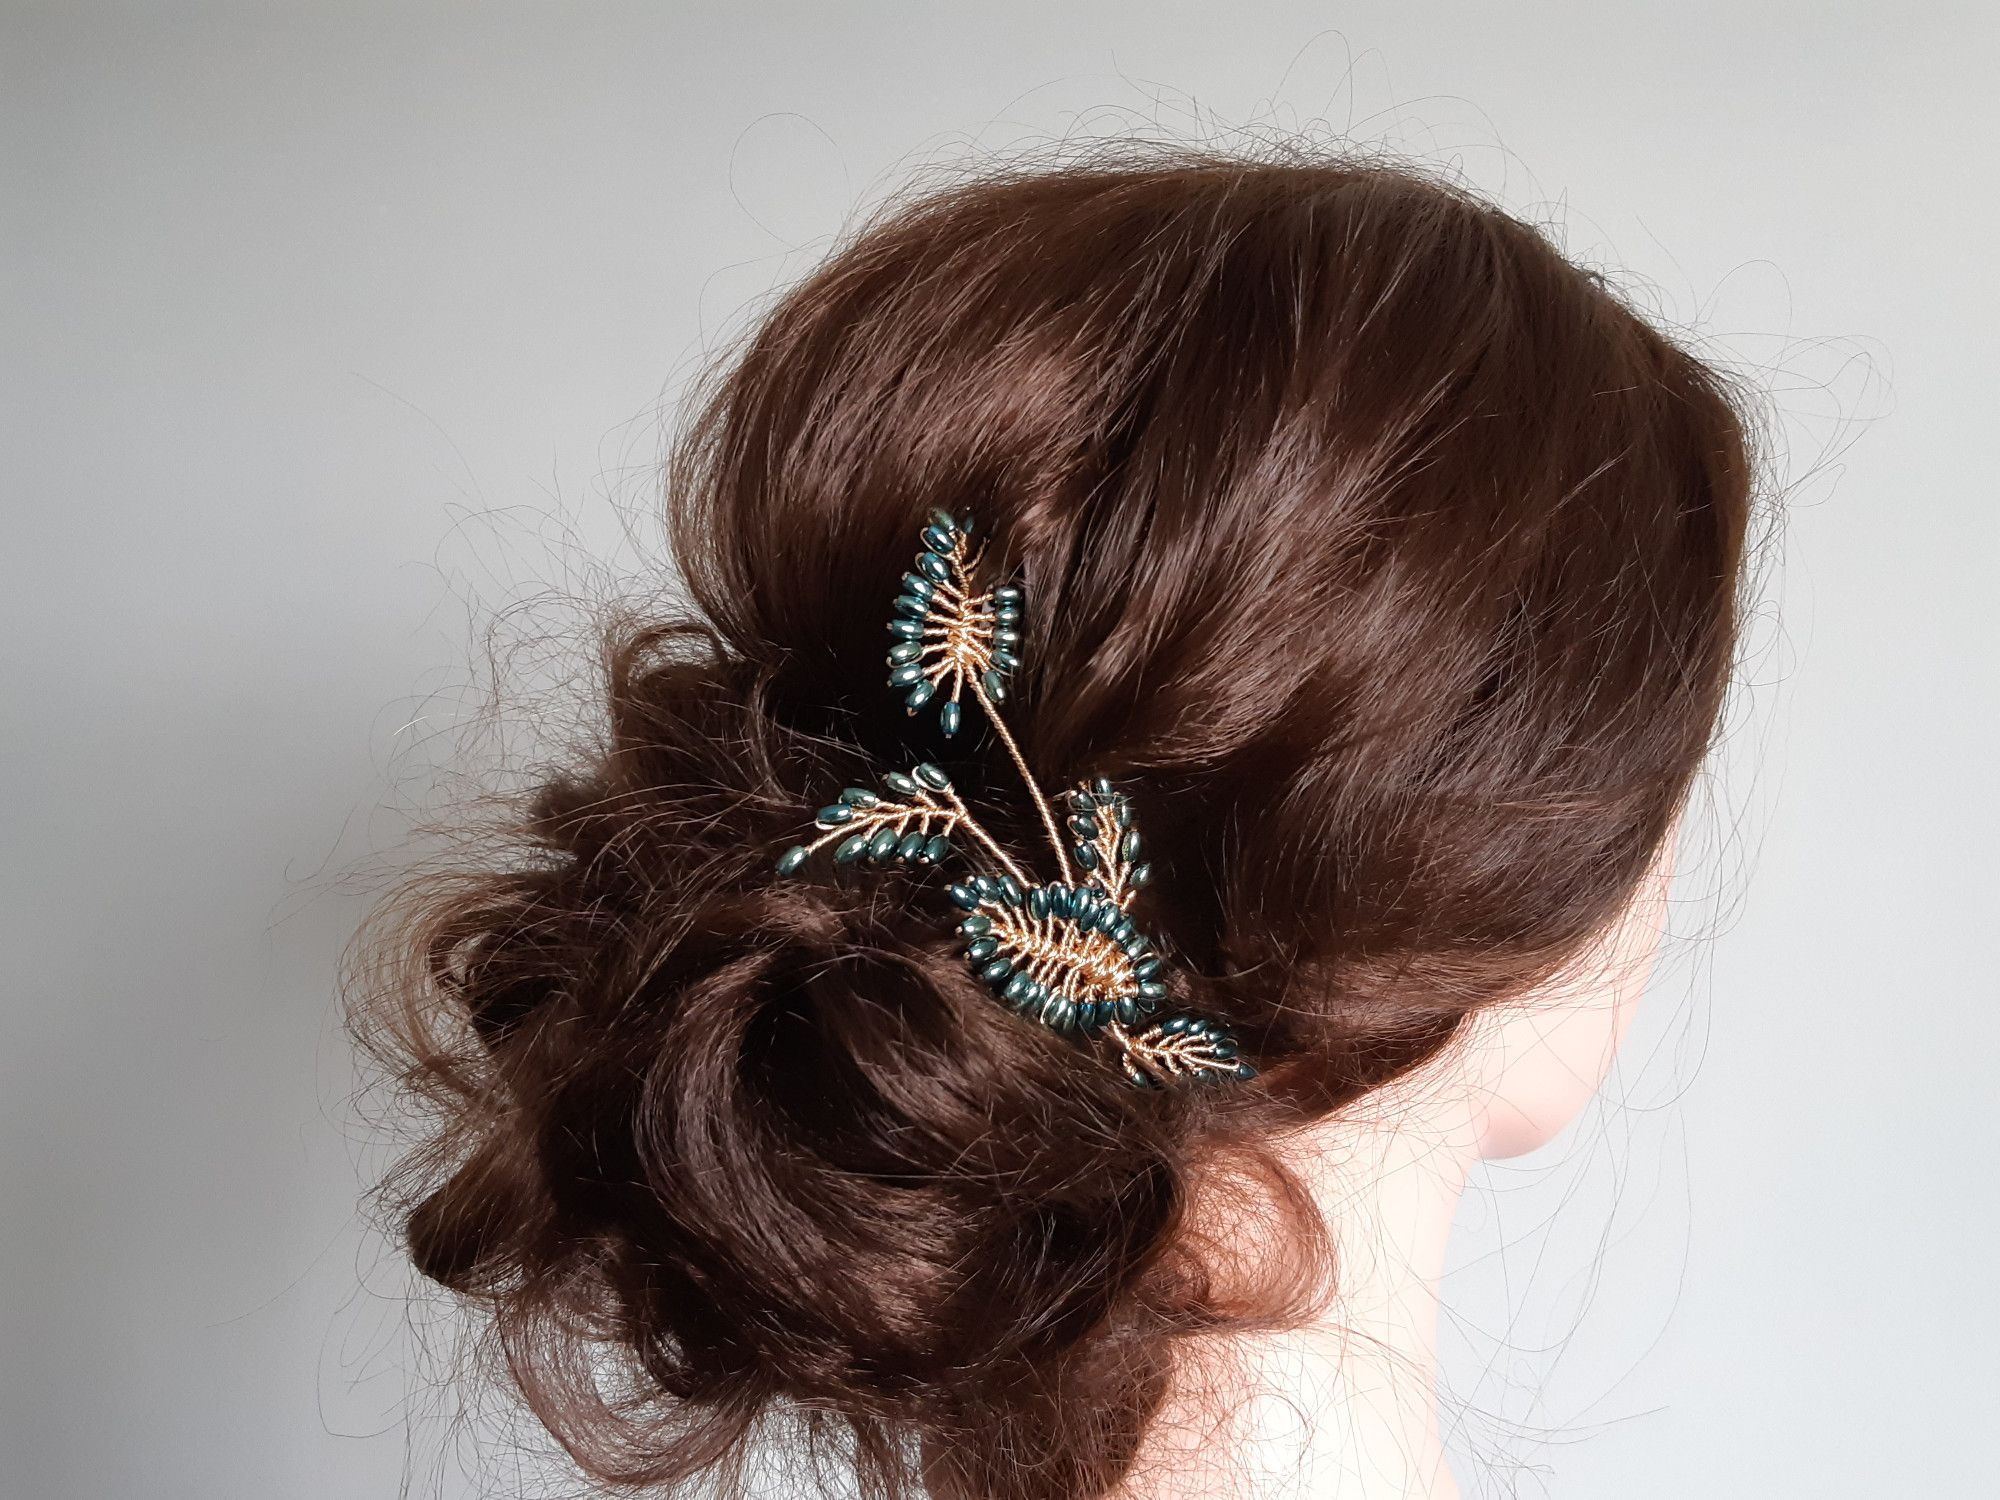 Green leaf+gold-occasion-wedding-hair accessory-UK-Gloucestershire-Acane1